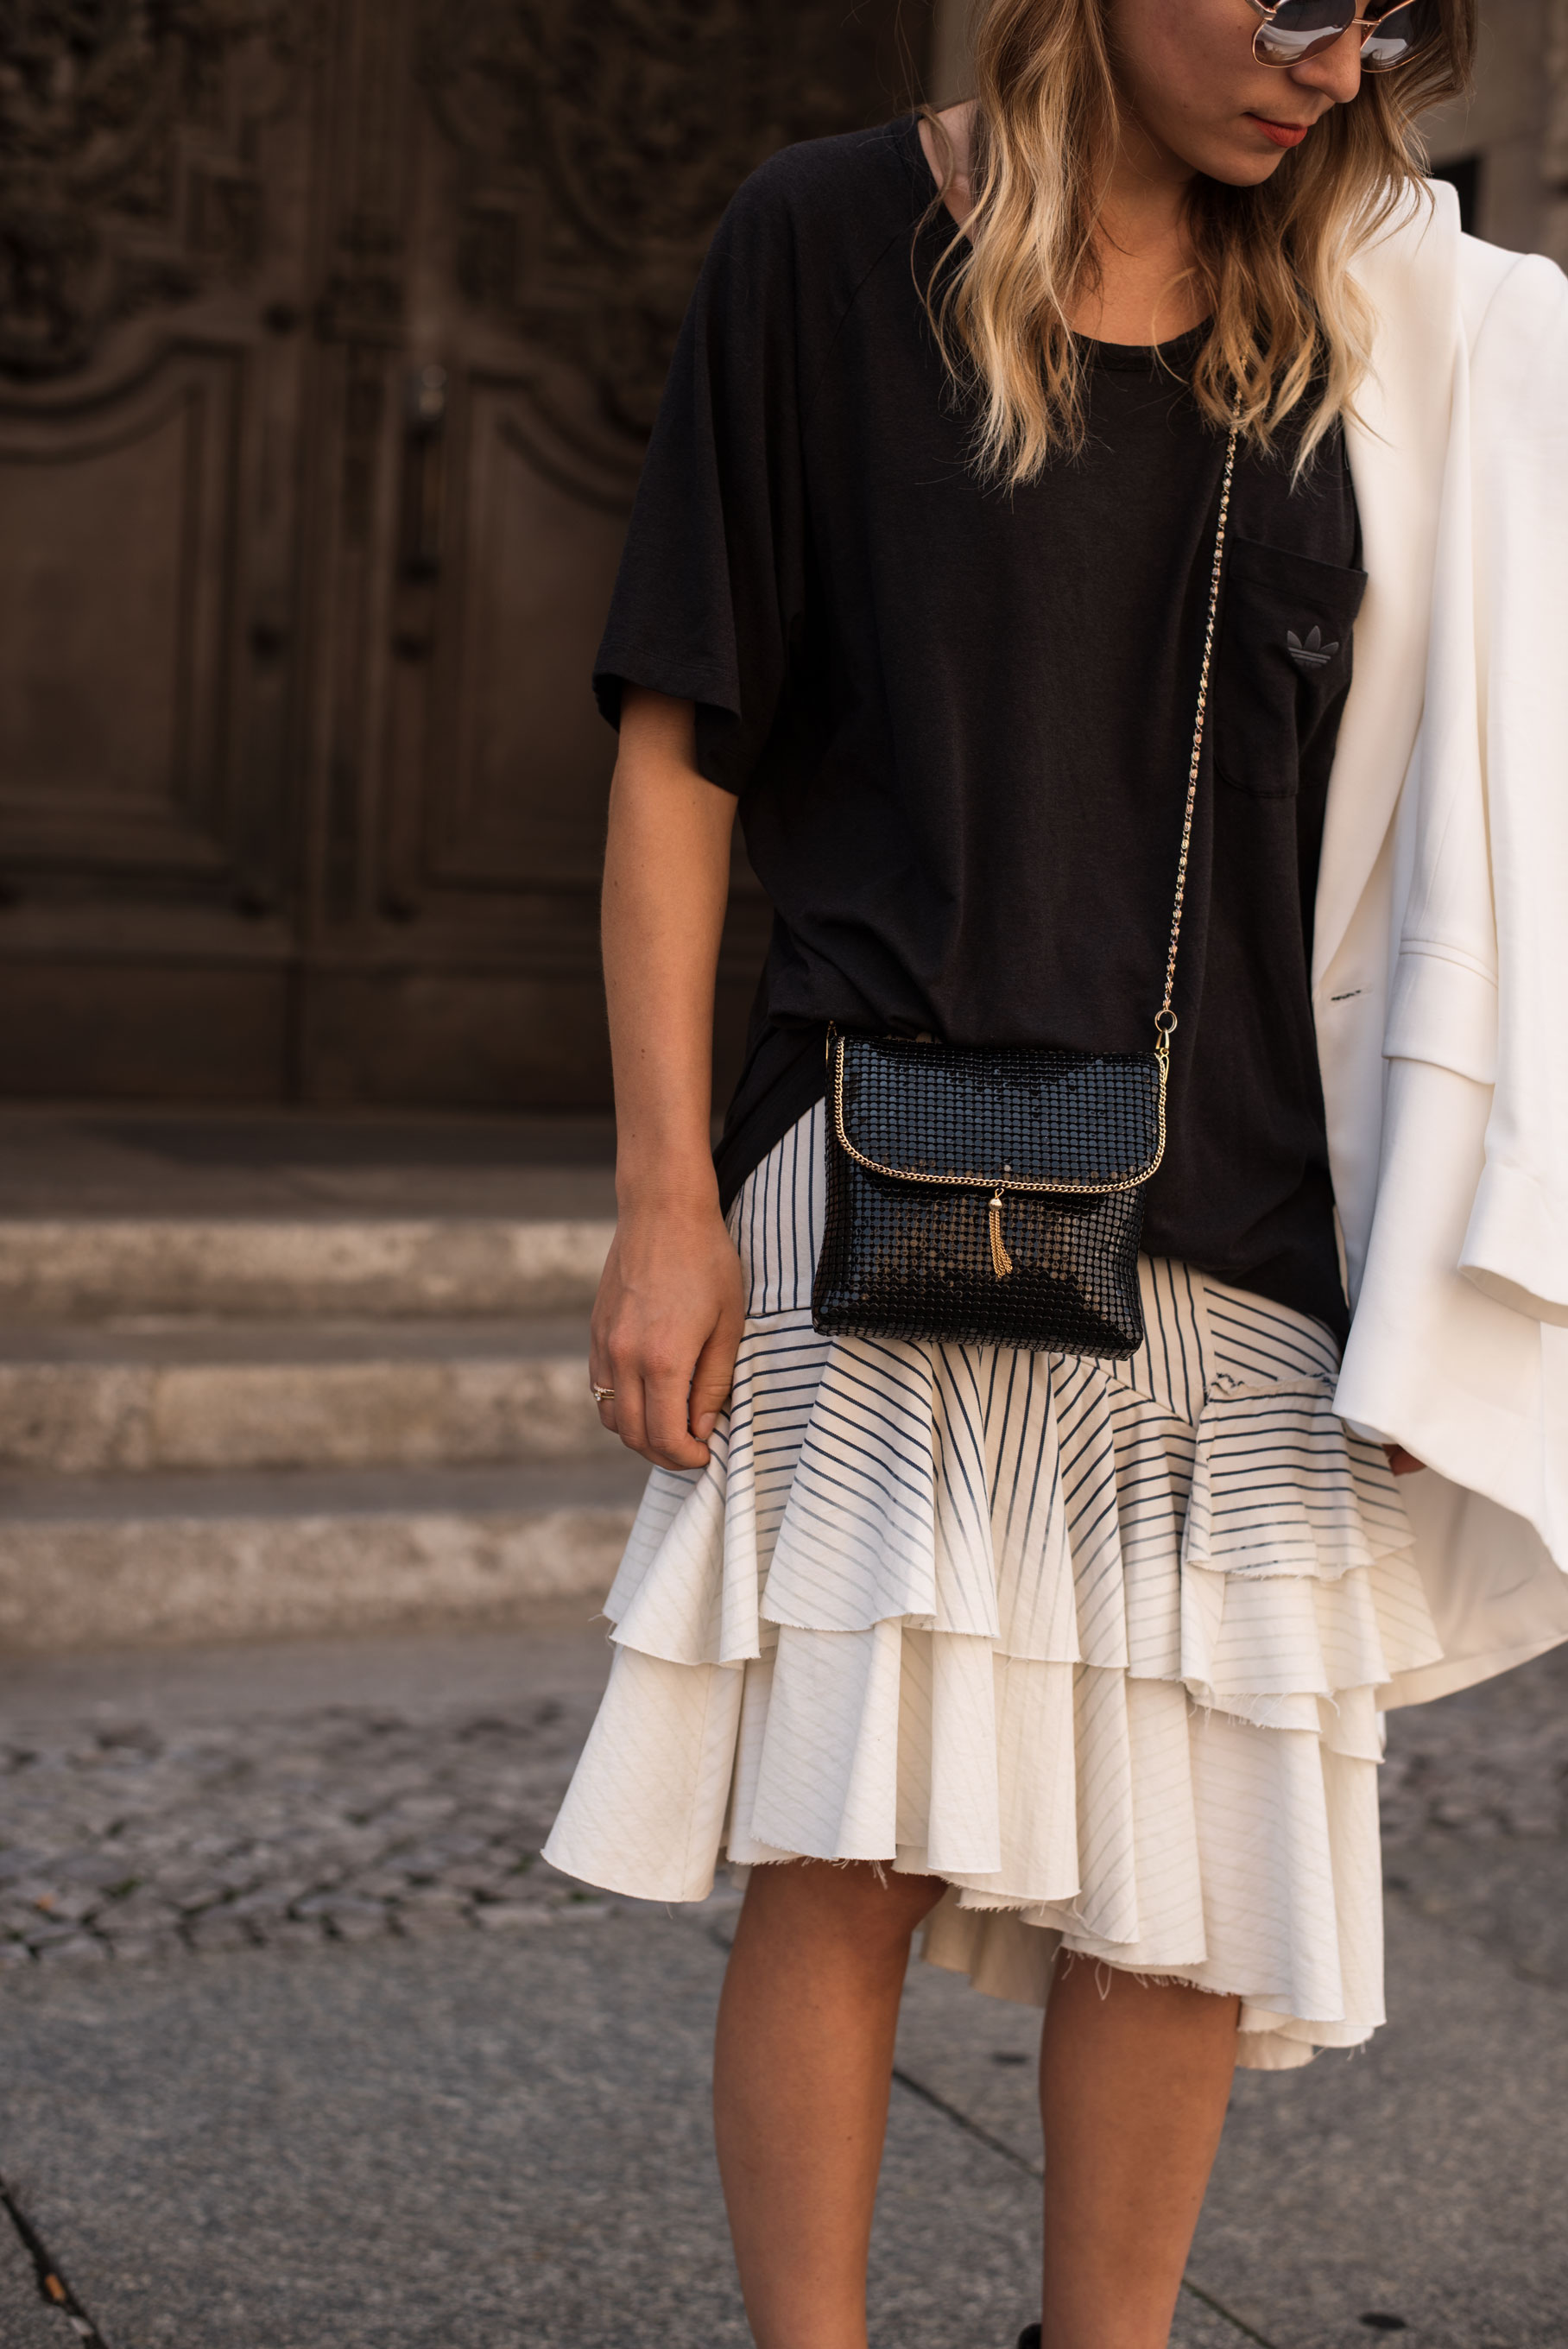 Denim Volant Skirt Rüschen Black and White Guess Adidas Streetstyle Fashion Week Berlin Casual Chic Sariety Modeblog Fashionblogger Heidelberg_2